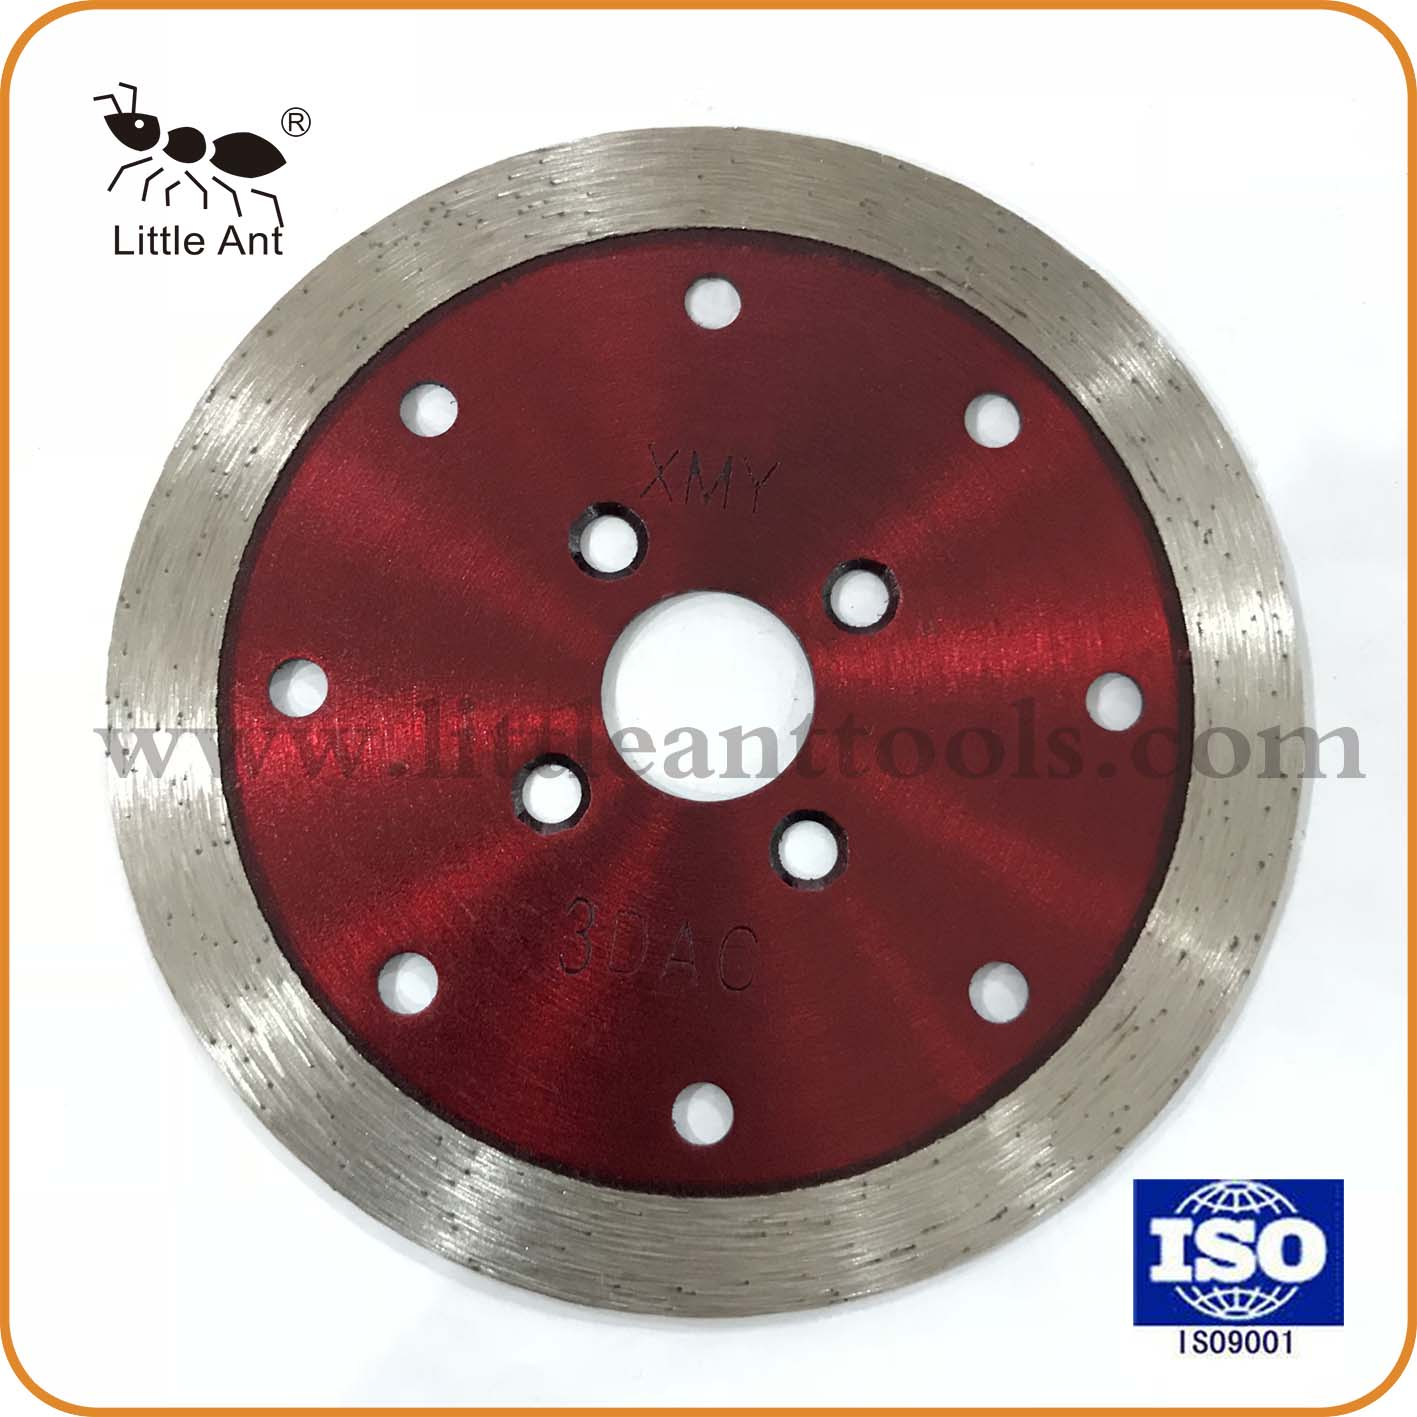 Diamond Wet Saw Blade 114MM for Granite Marble Black